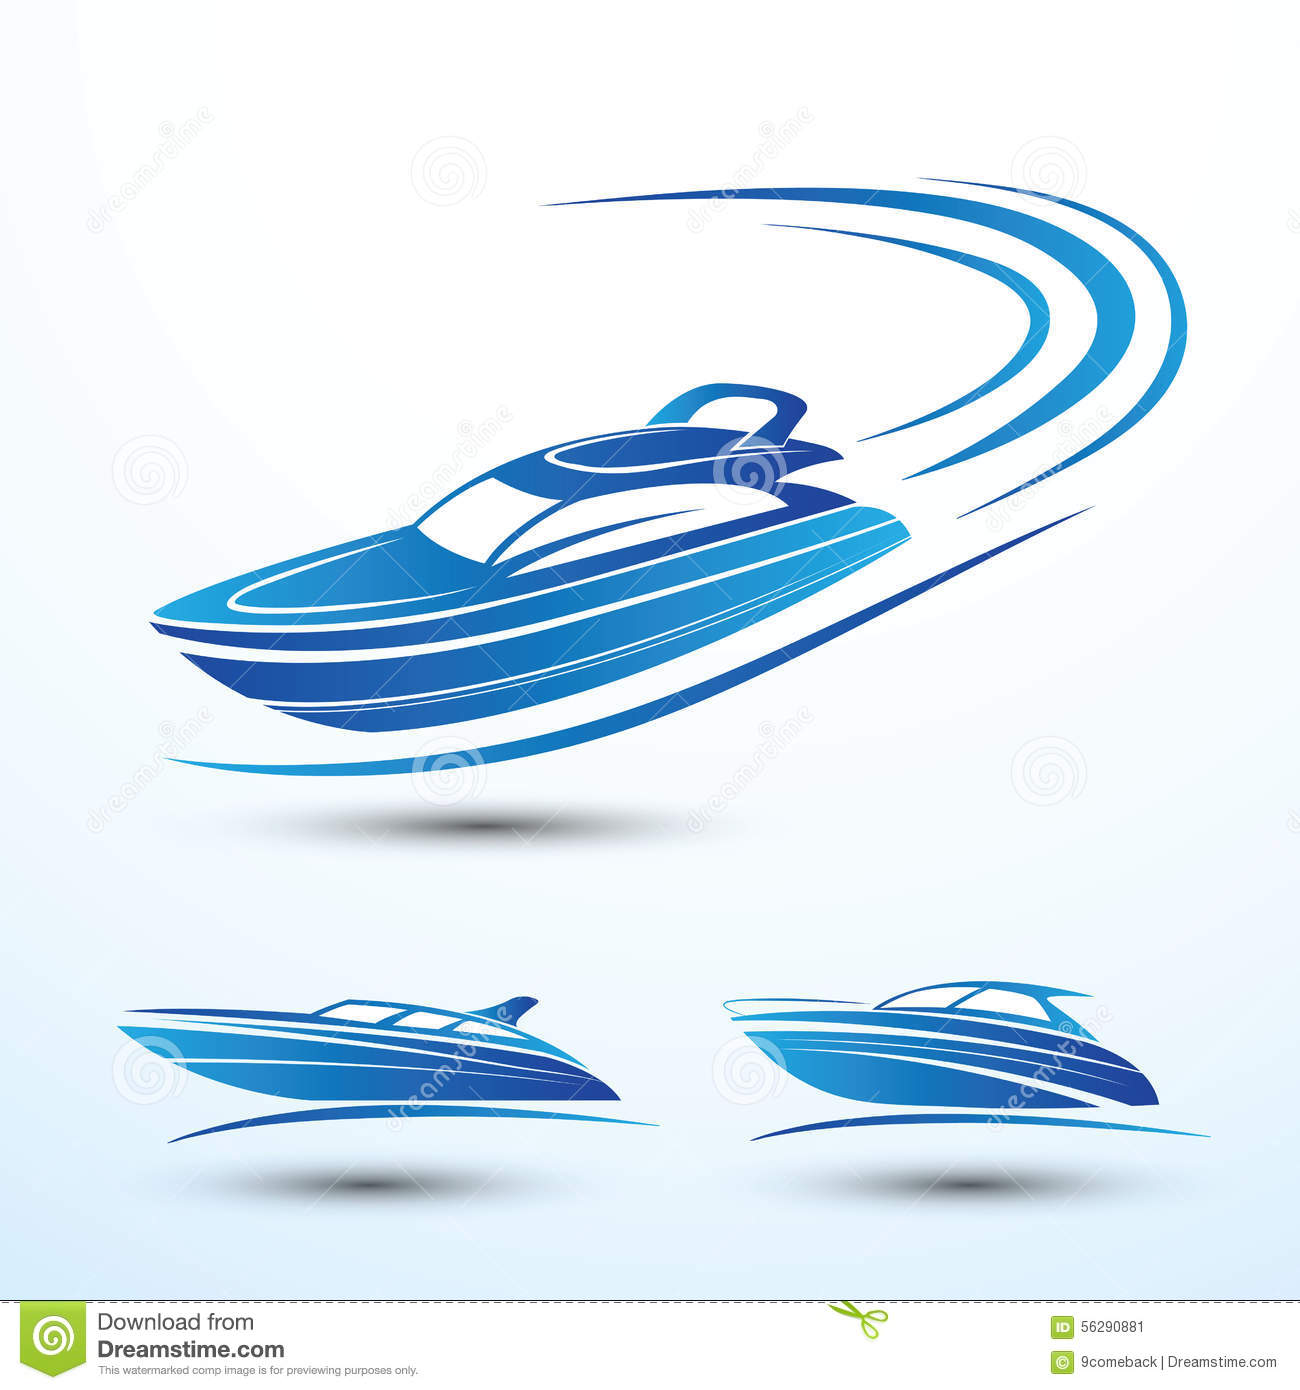 Speed boat stock vector. Image of holiday, boating, yacht - 56290881